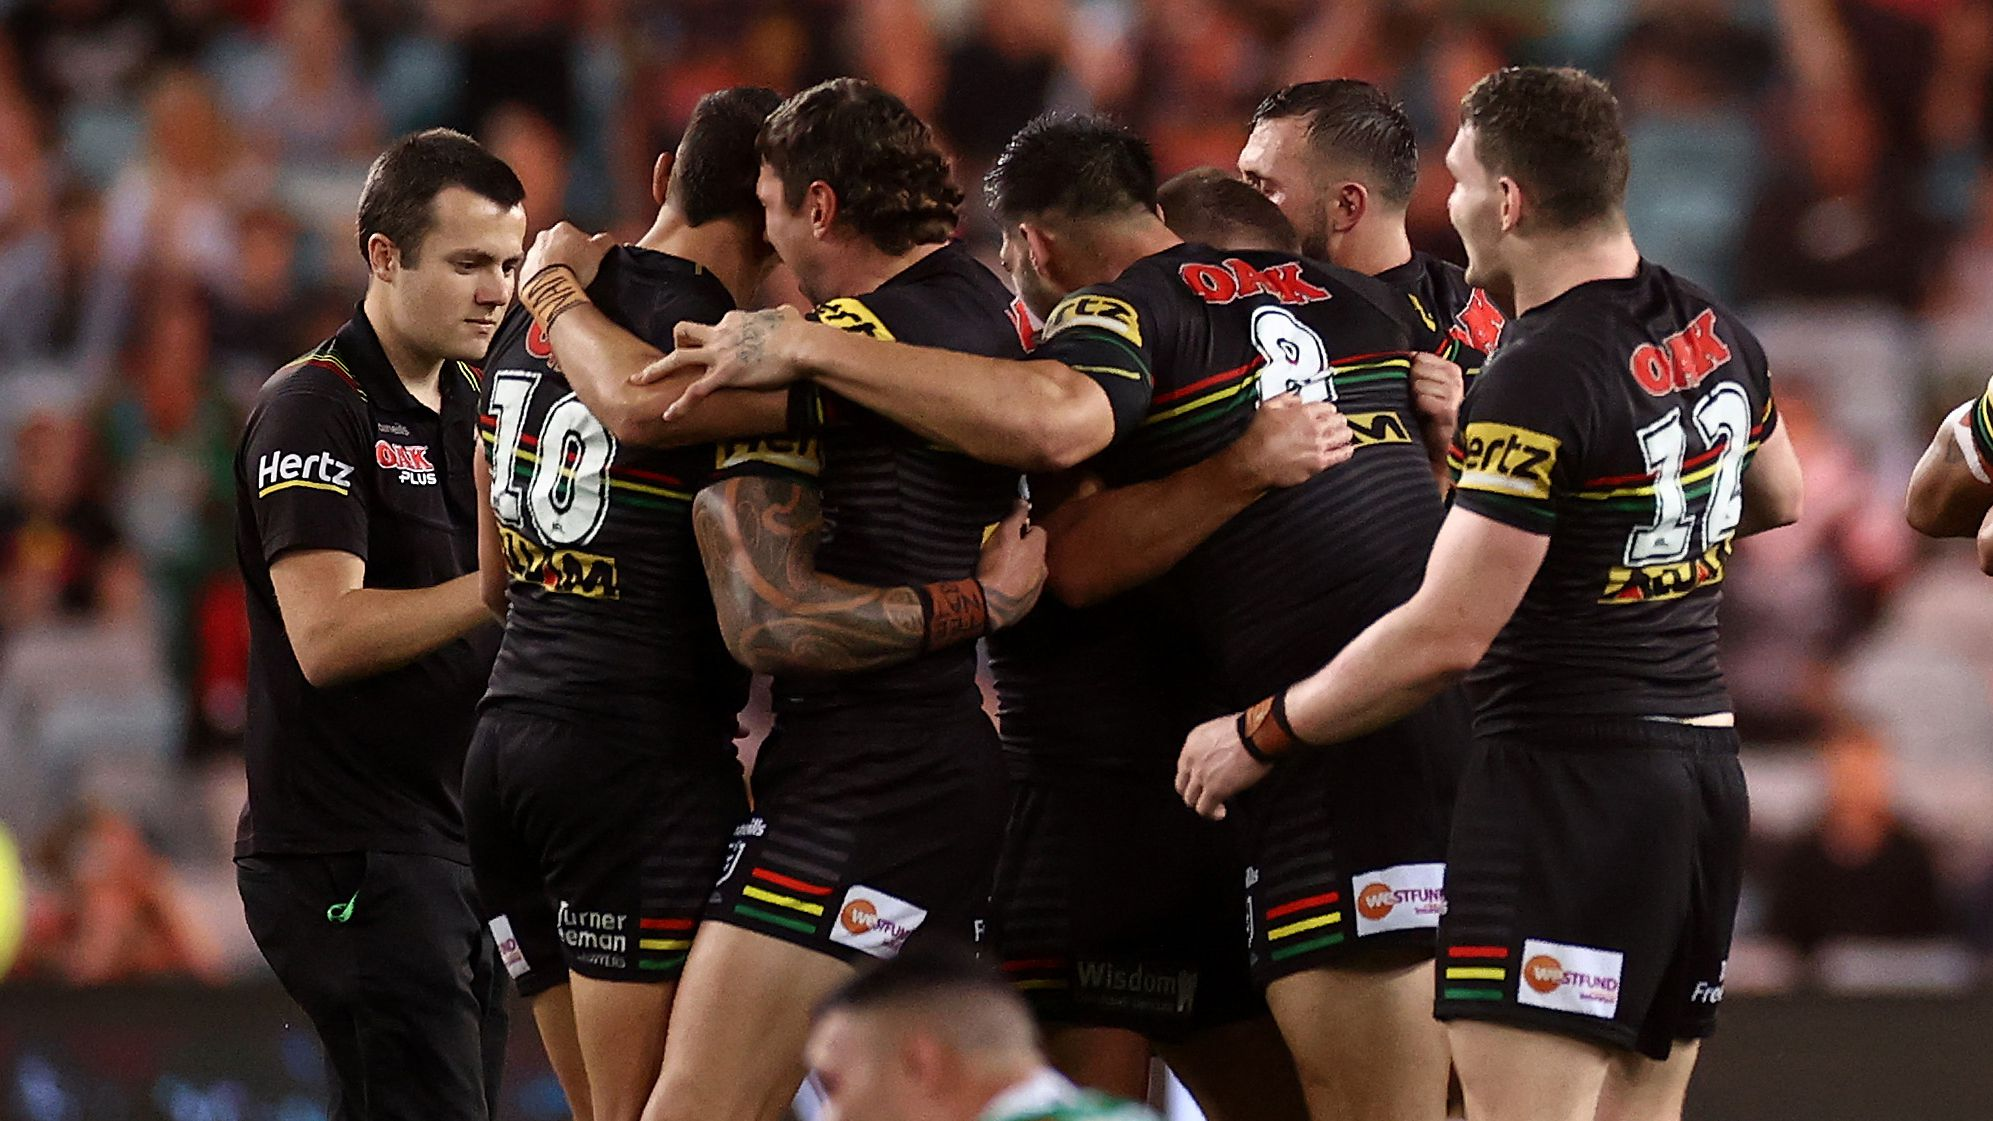 The Panthers celebrate their victory over the Rabbitohs.